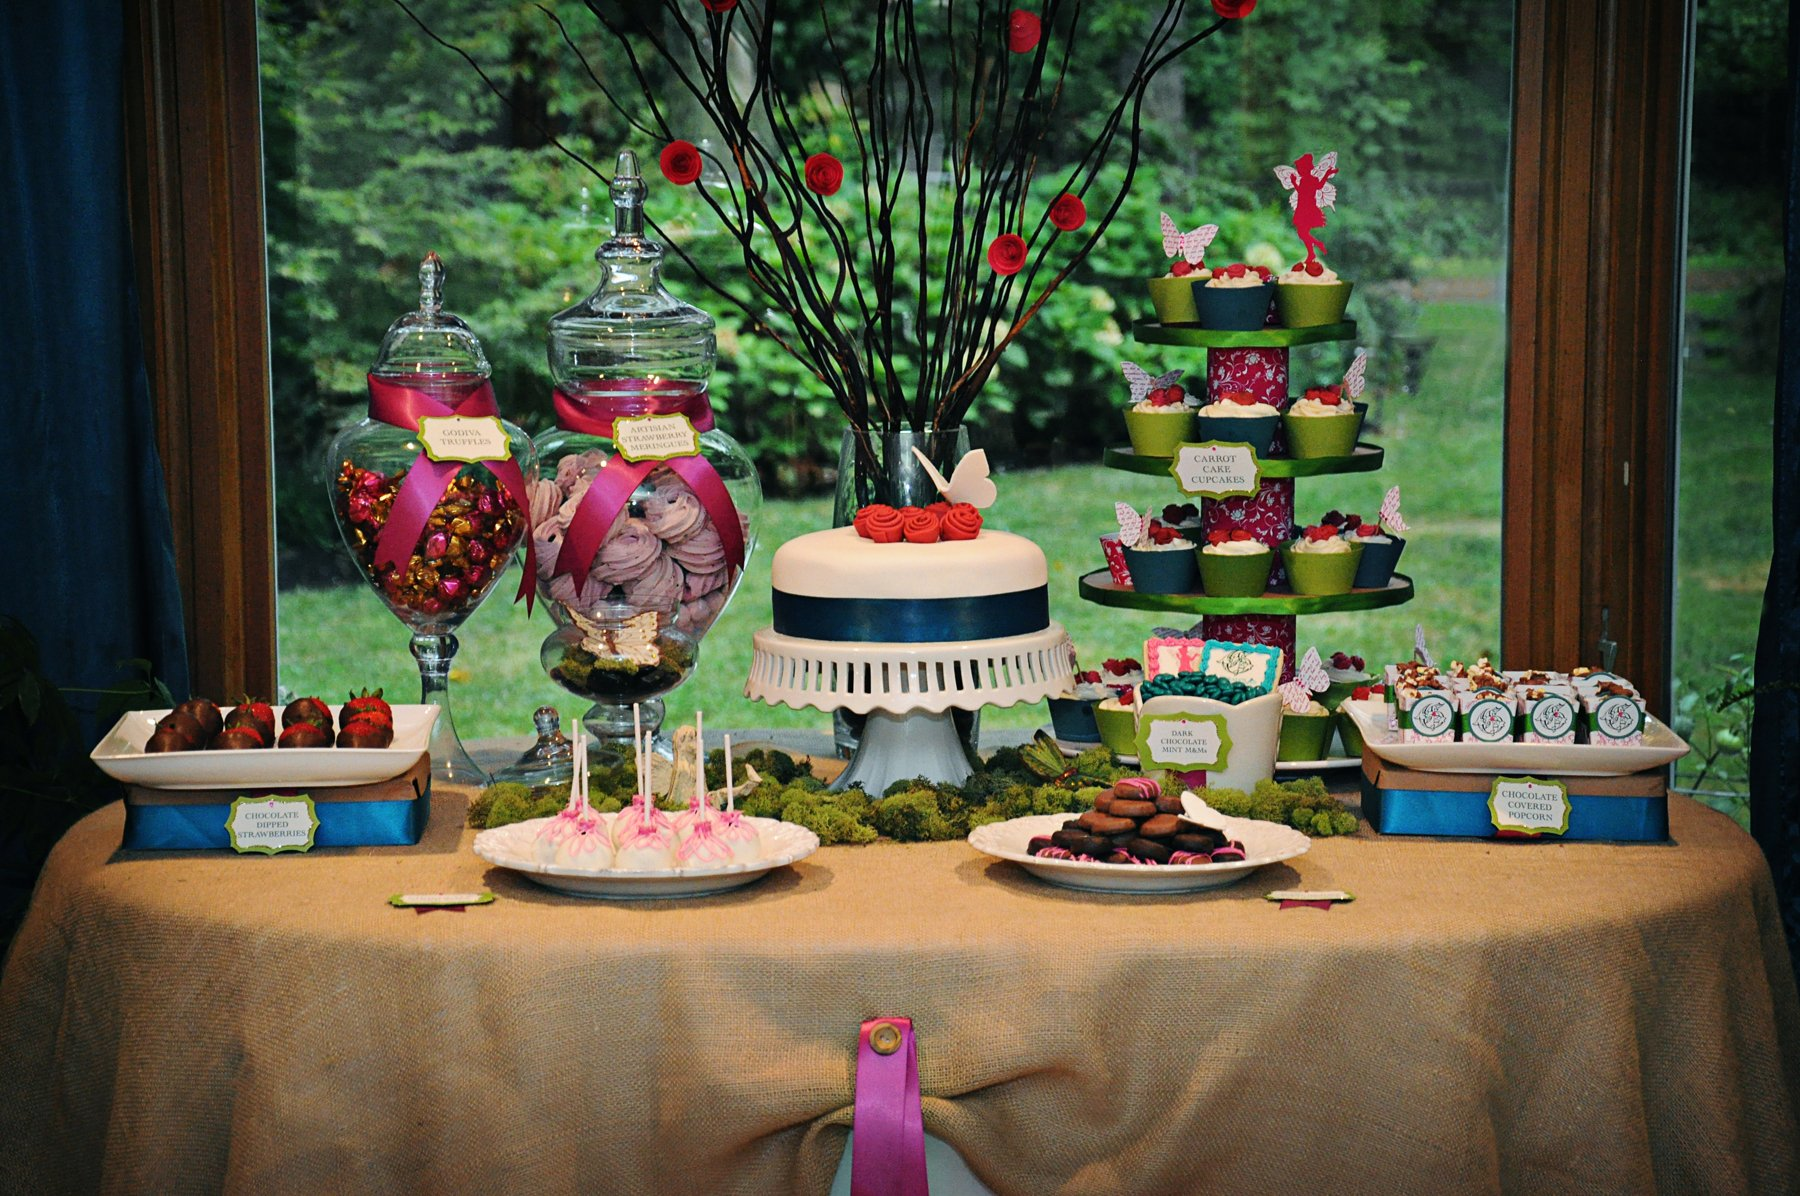 midsummer fairy dessert table